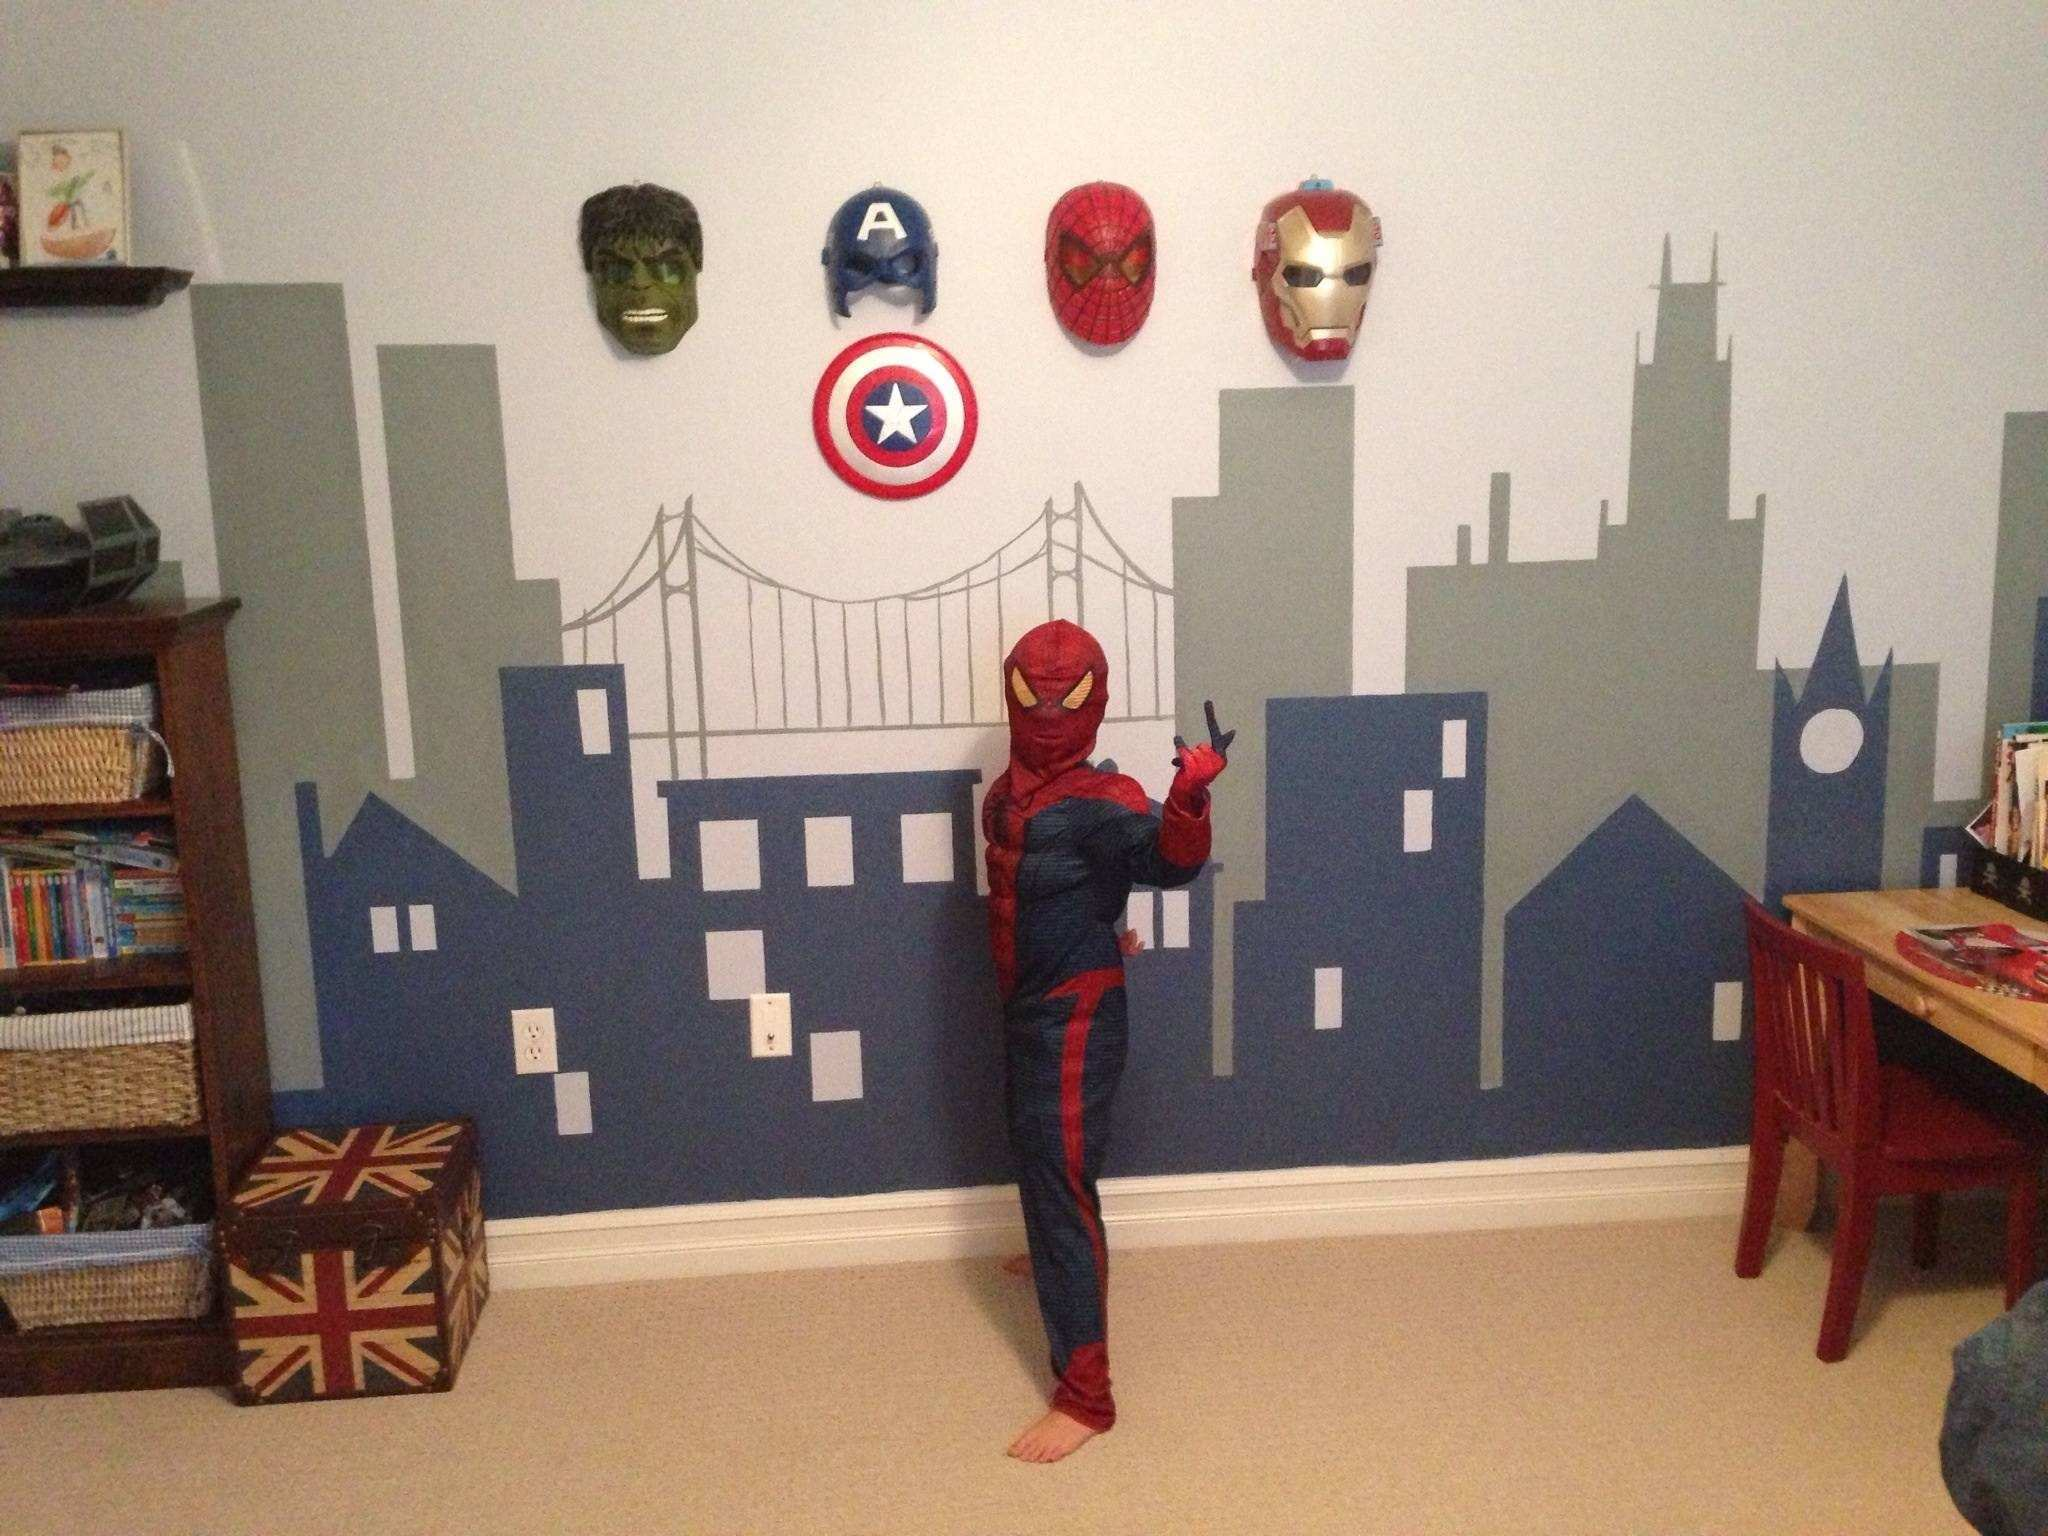 Superhero Wall Decor talentneeds